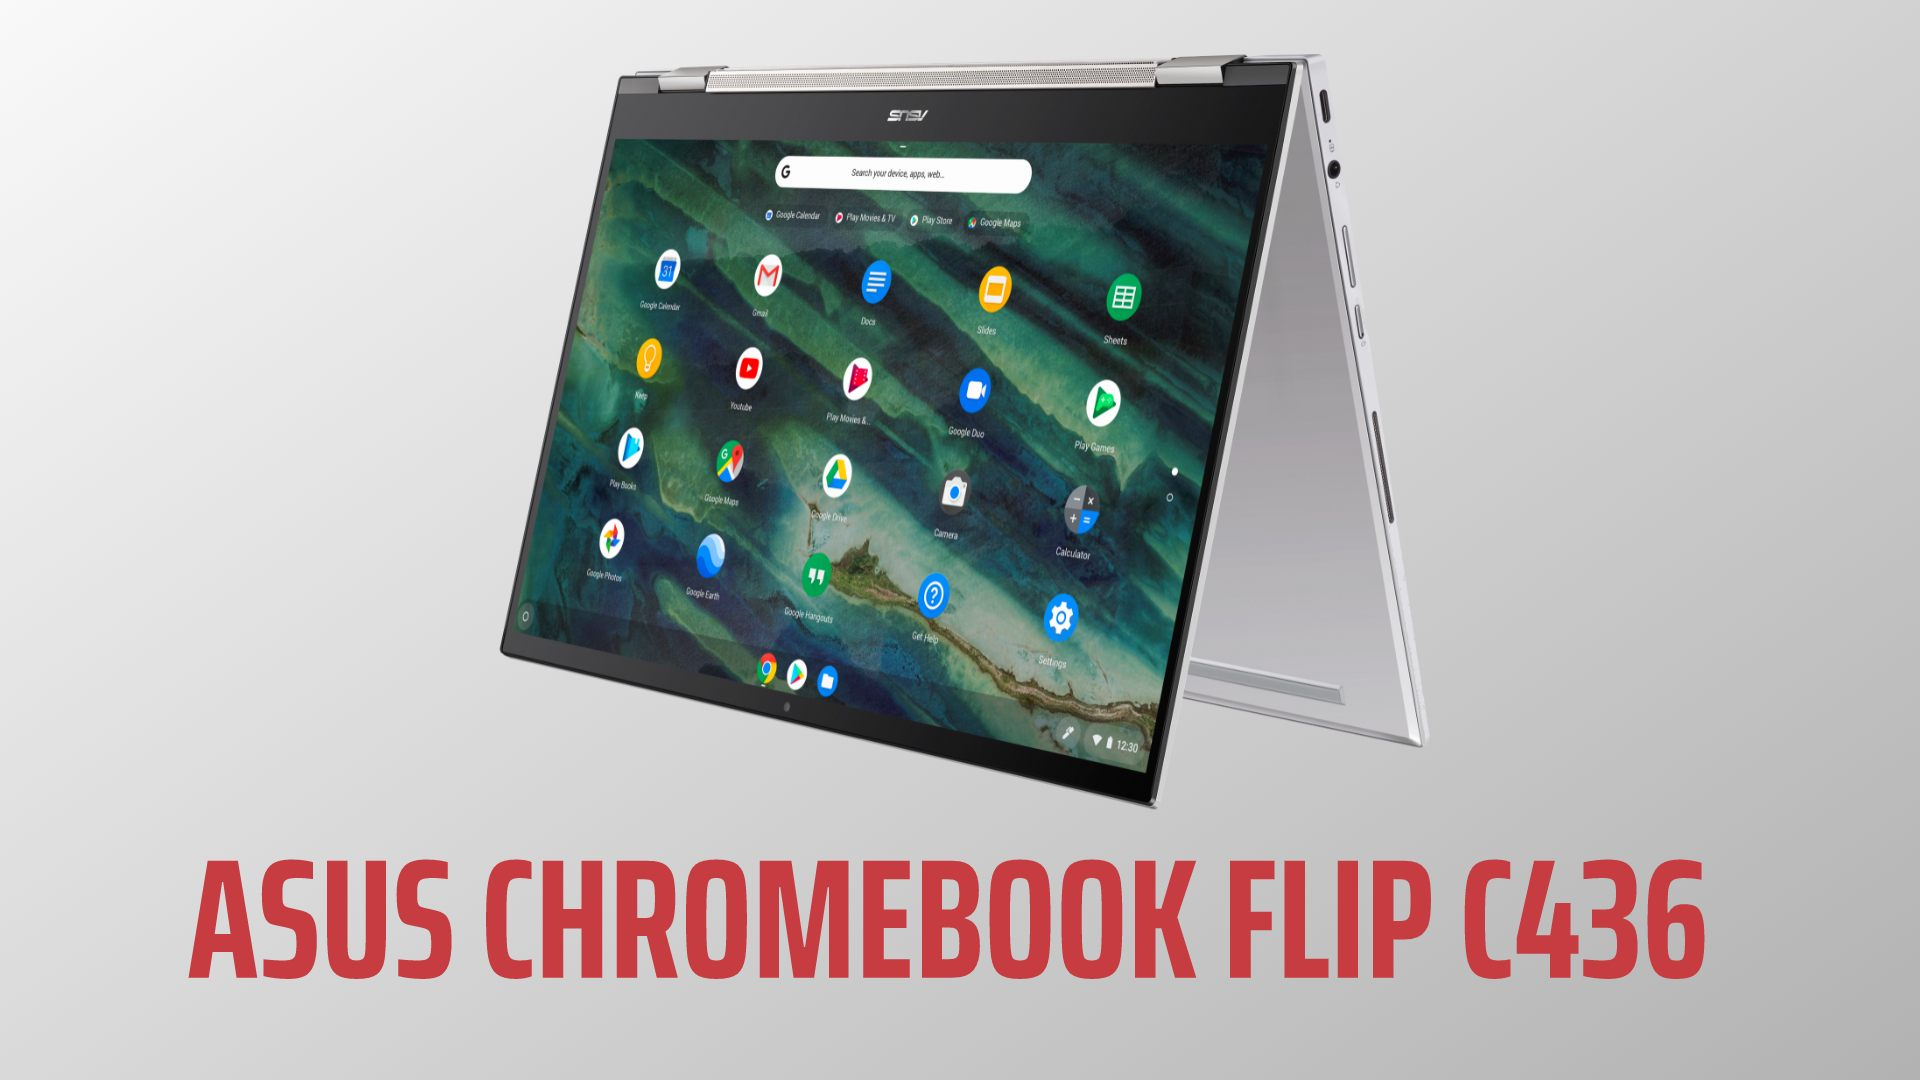 ASUS delivers as the Chromebook Flip C436 arrives at CES 2020 - Chrome Unboxed